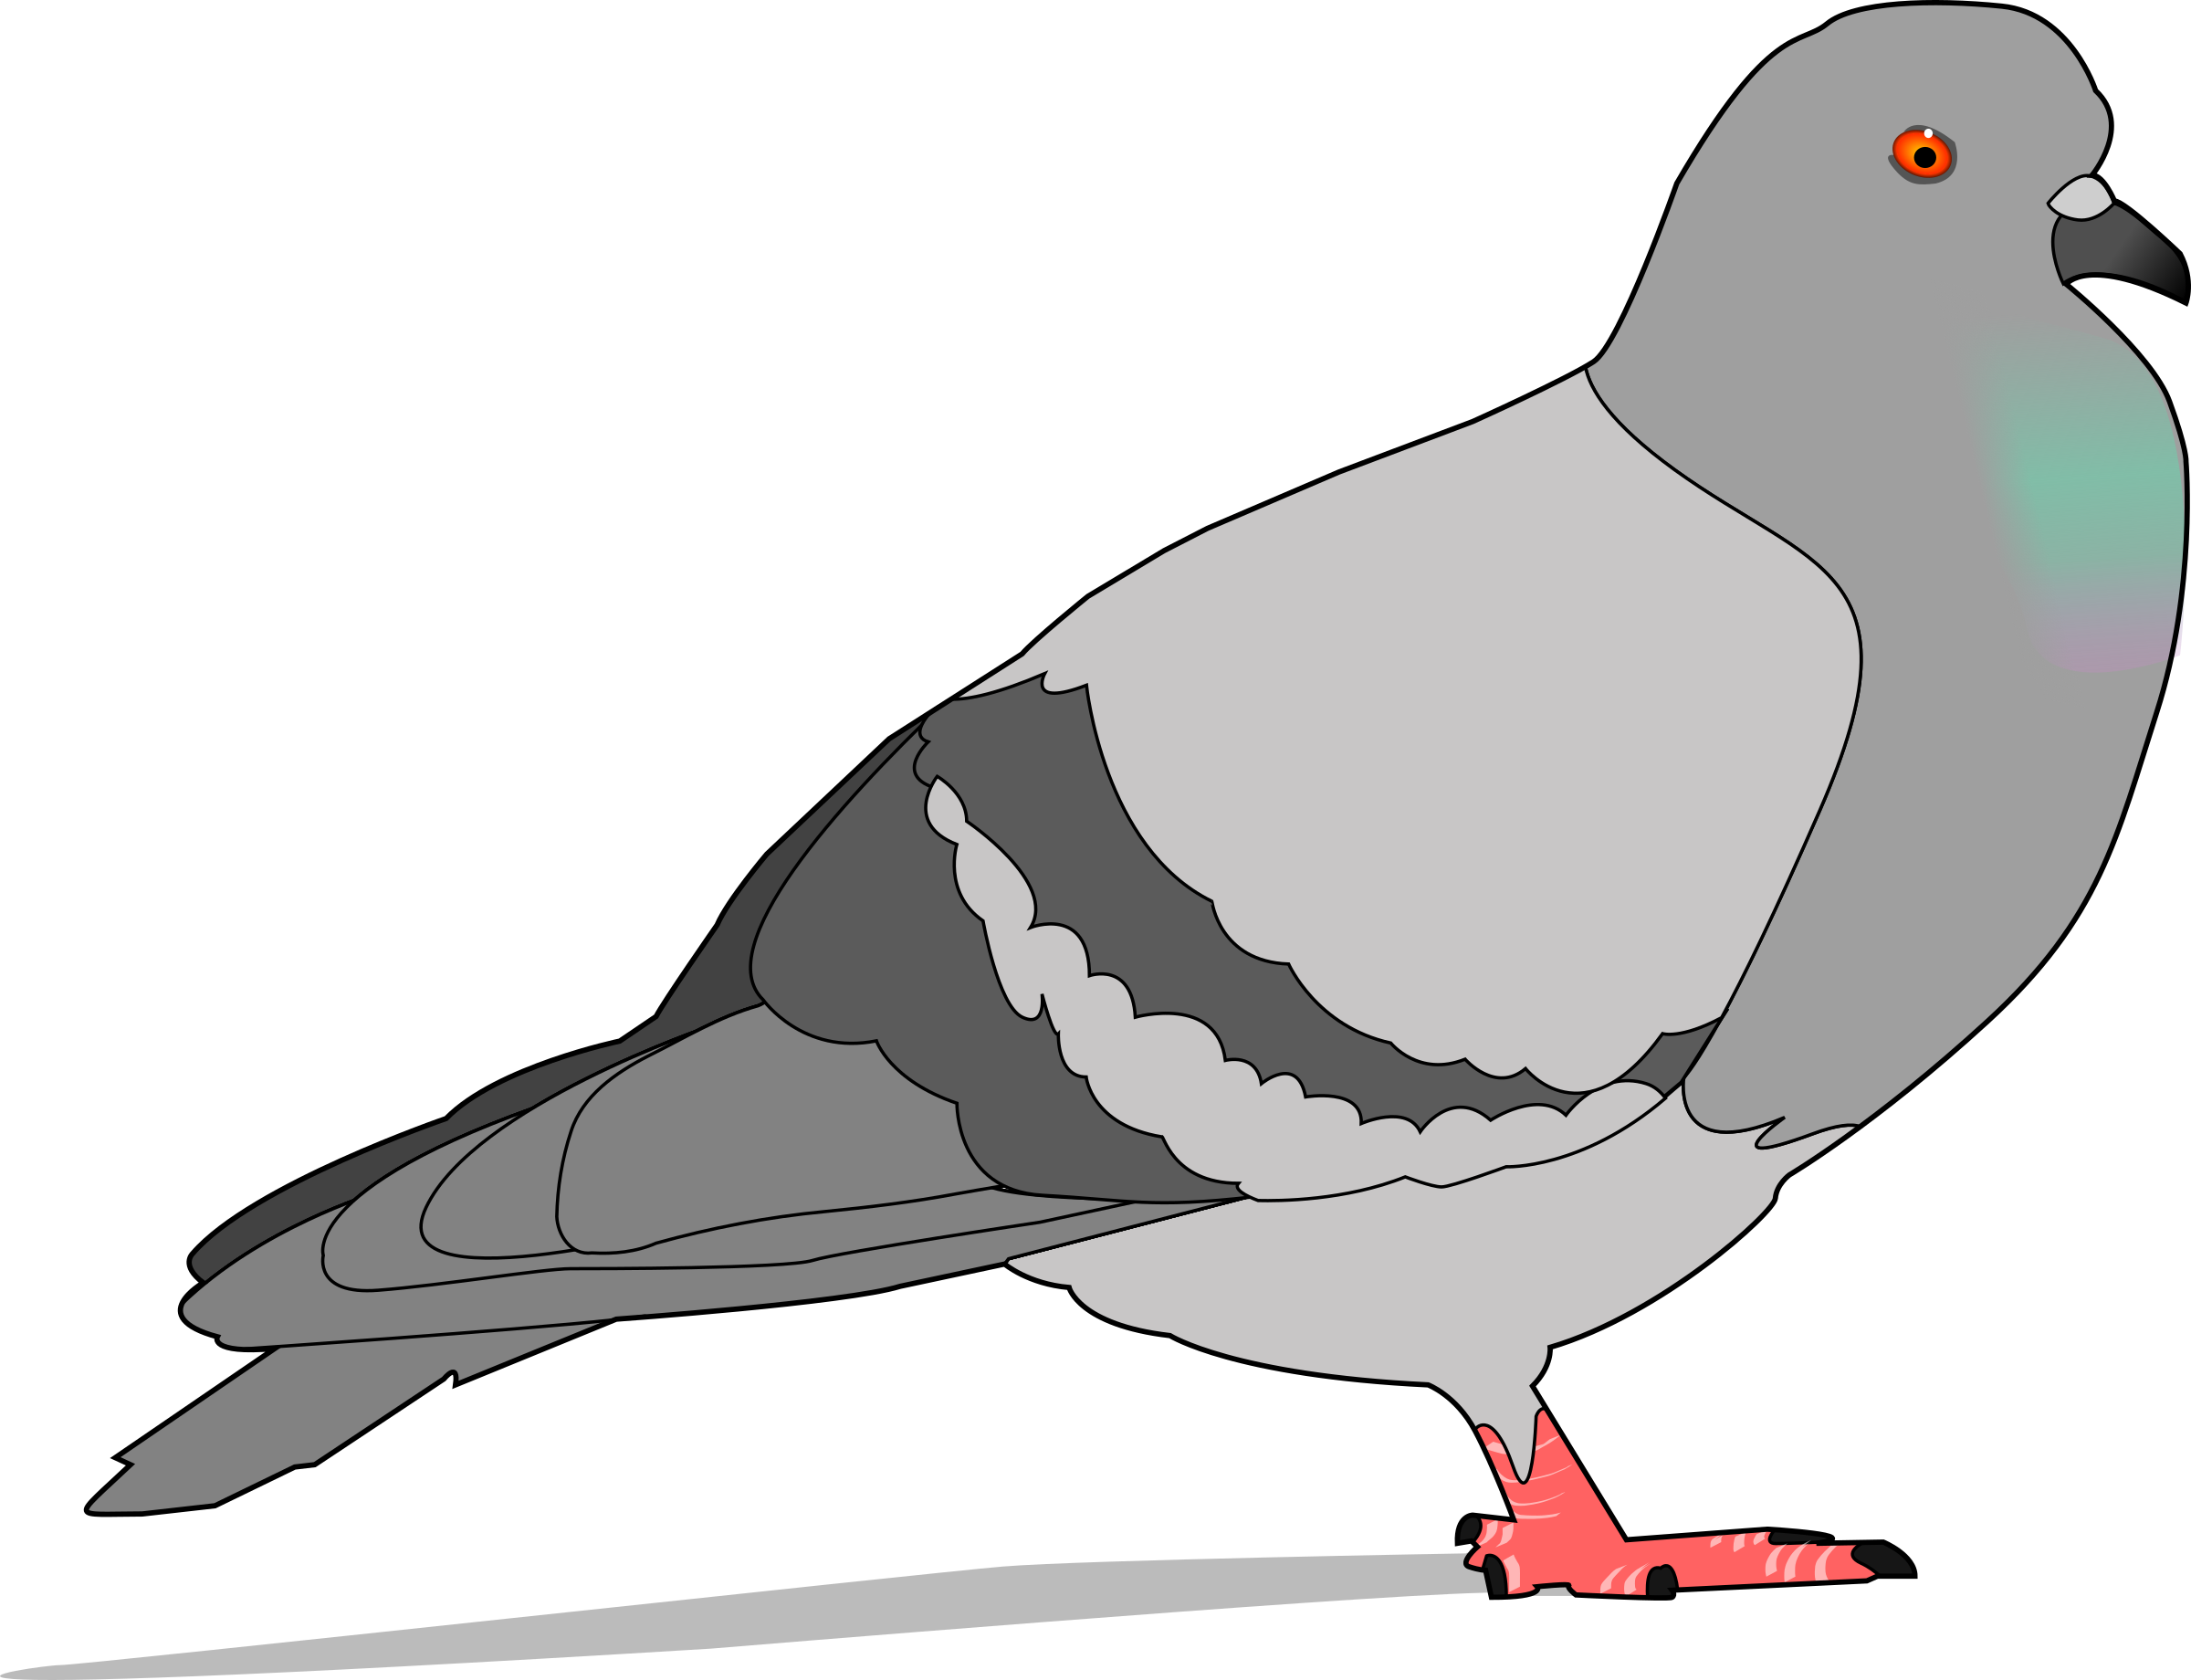 Big image png. Pigeon clipart pigen png library stock